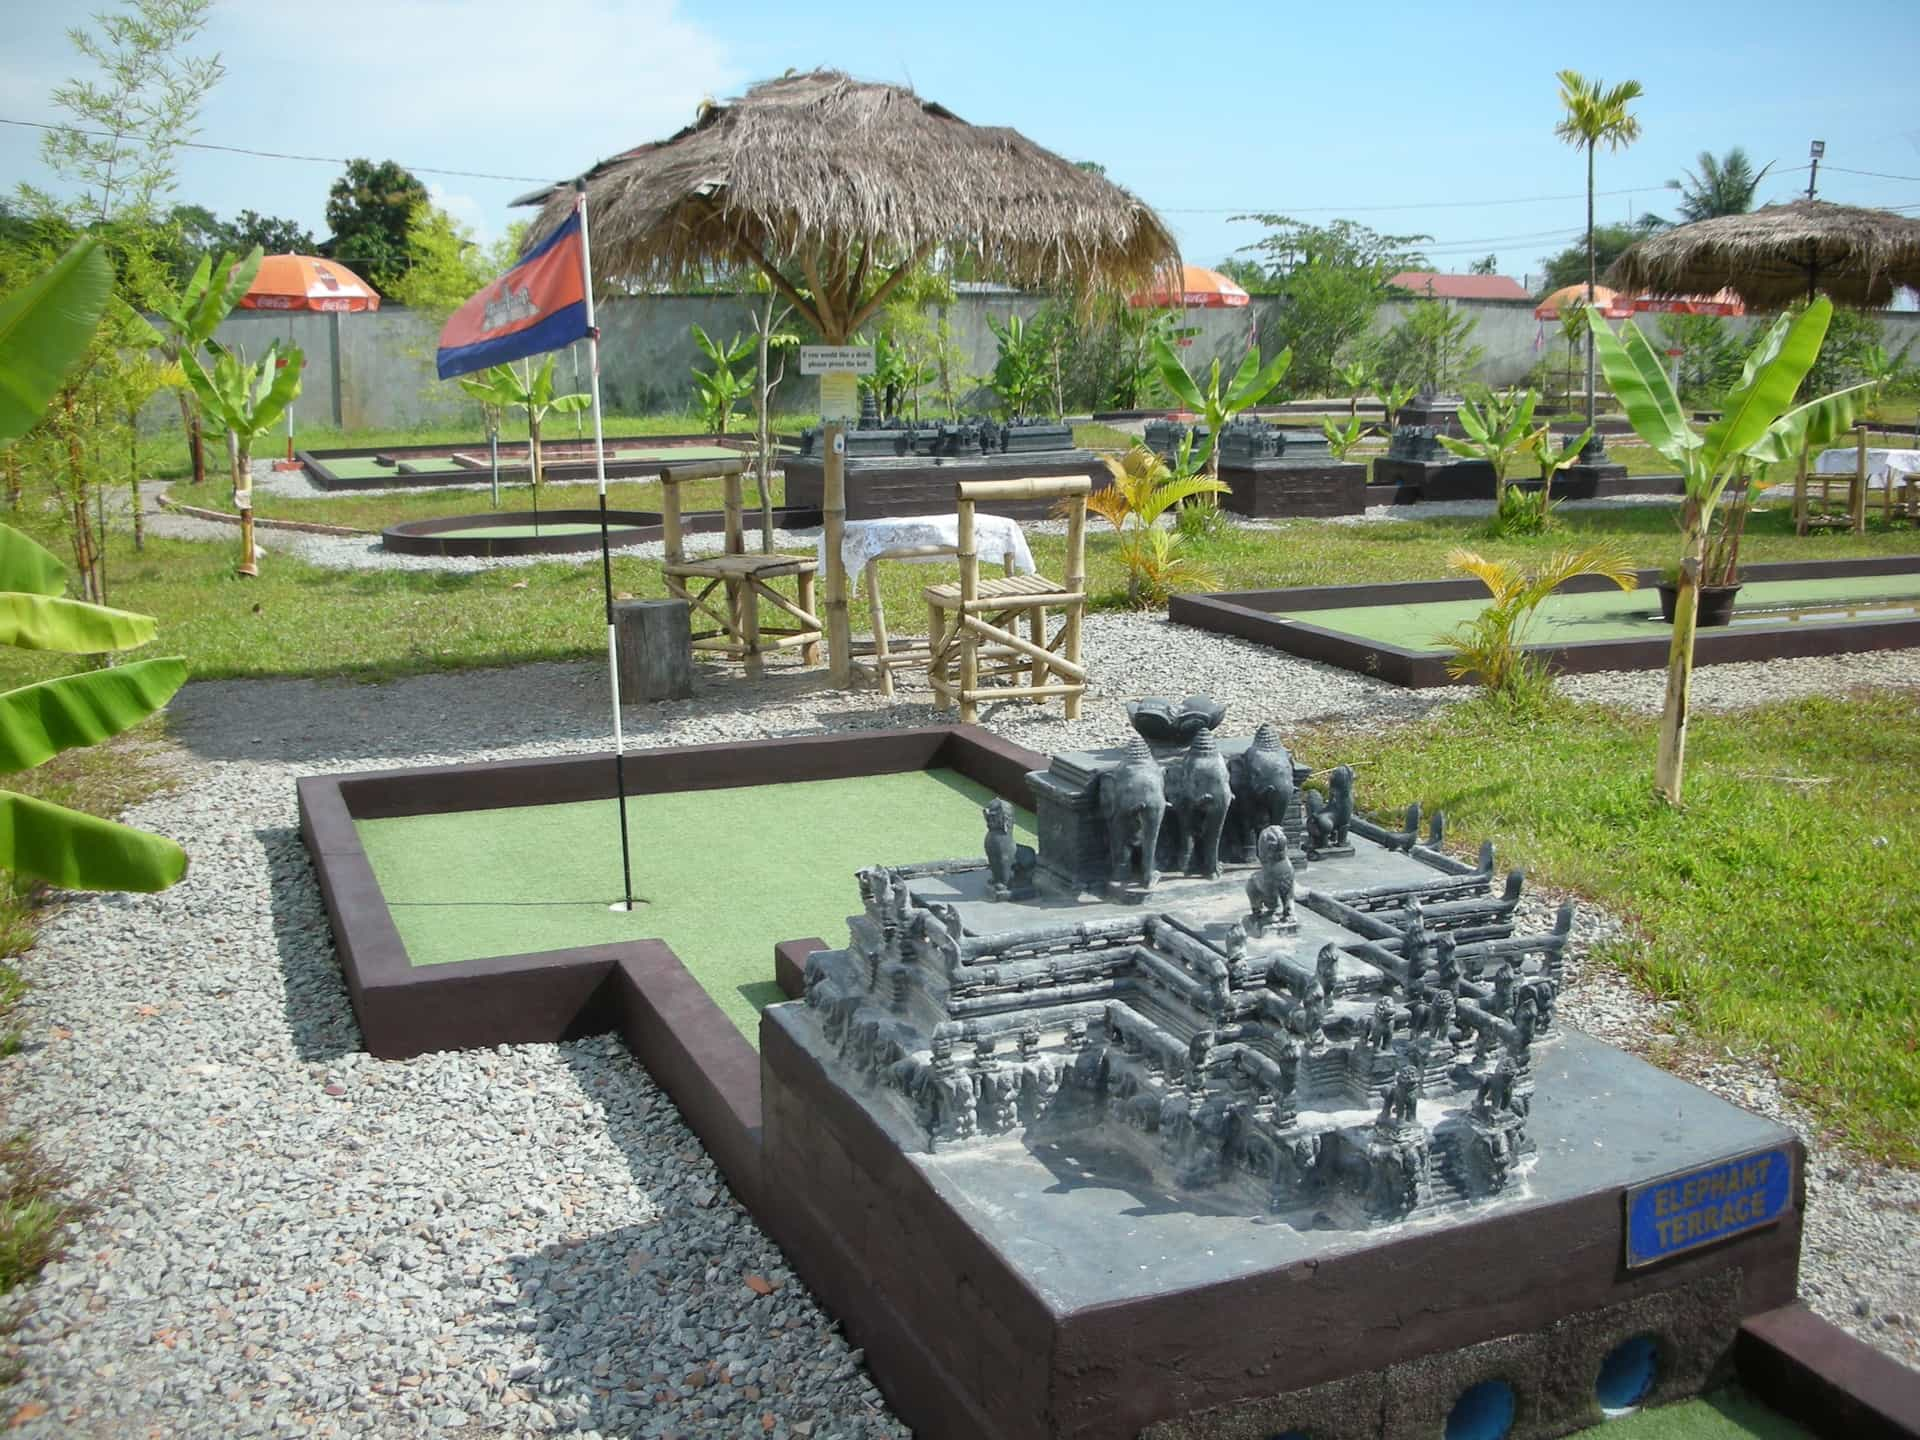 Angkor wat putt minitature golf course siem reap mad monkey hostels for Garden city mini golf